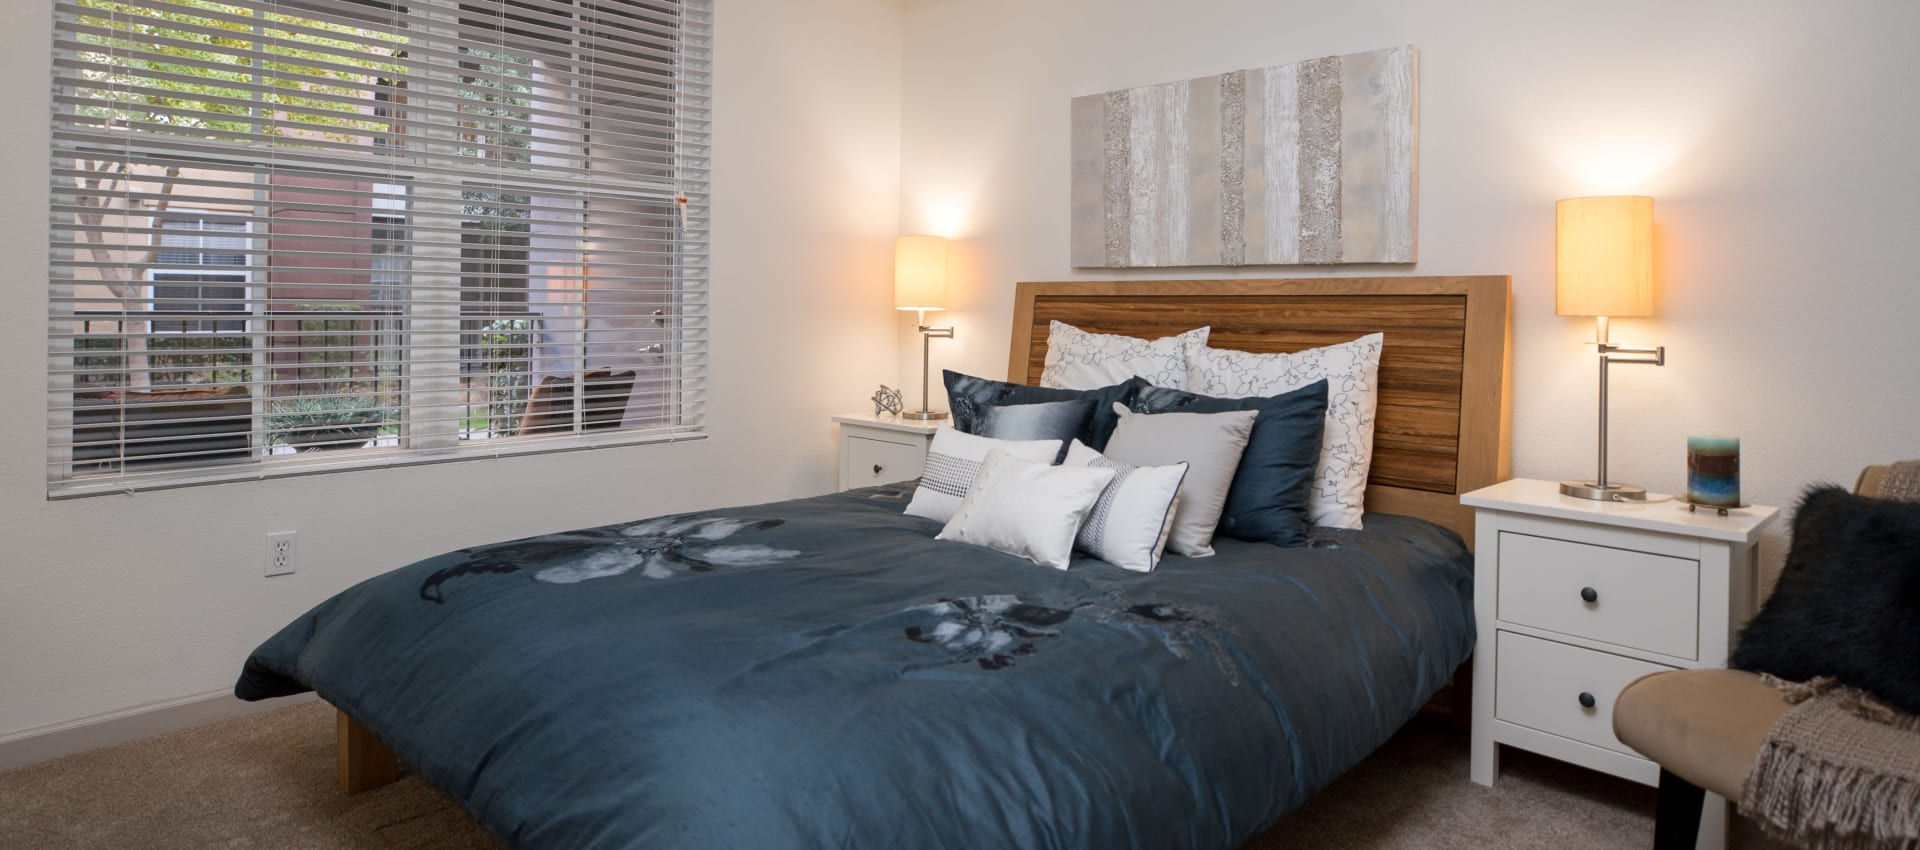 Bedroom at Park Central in Concord, California